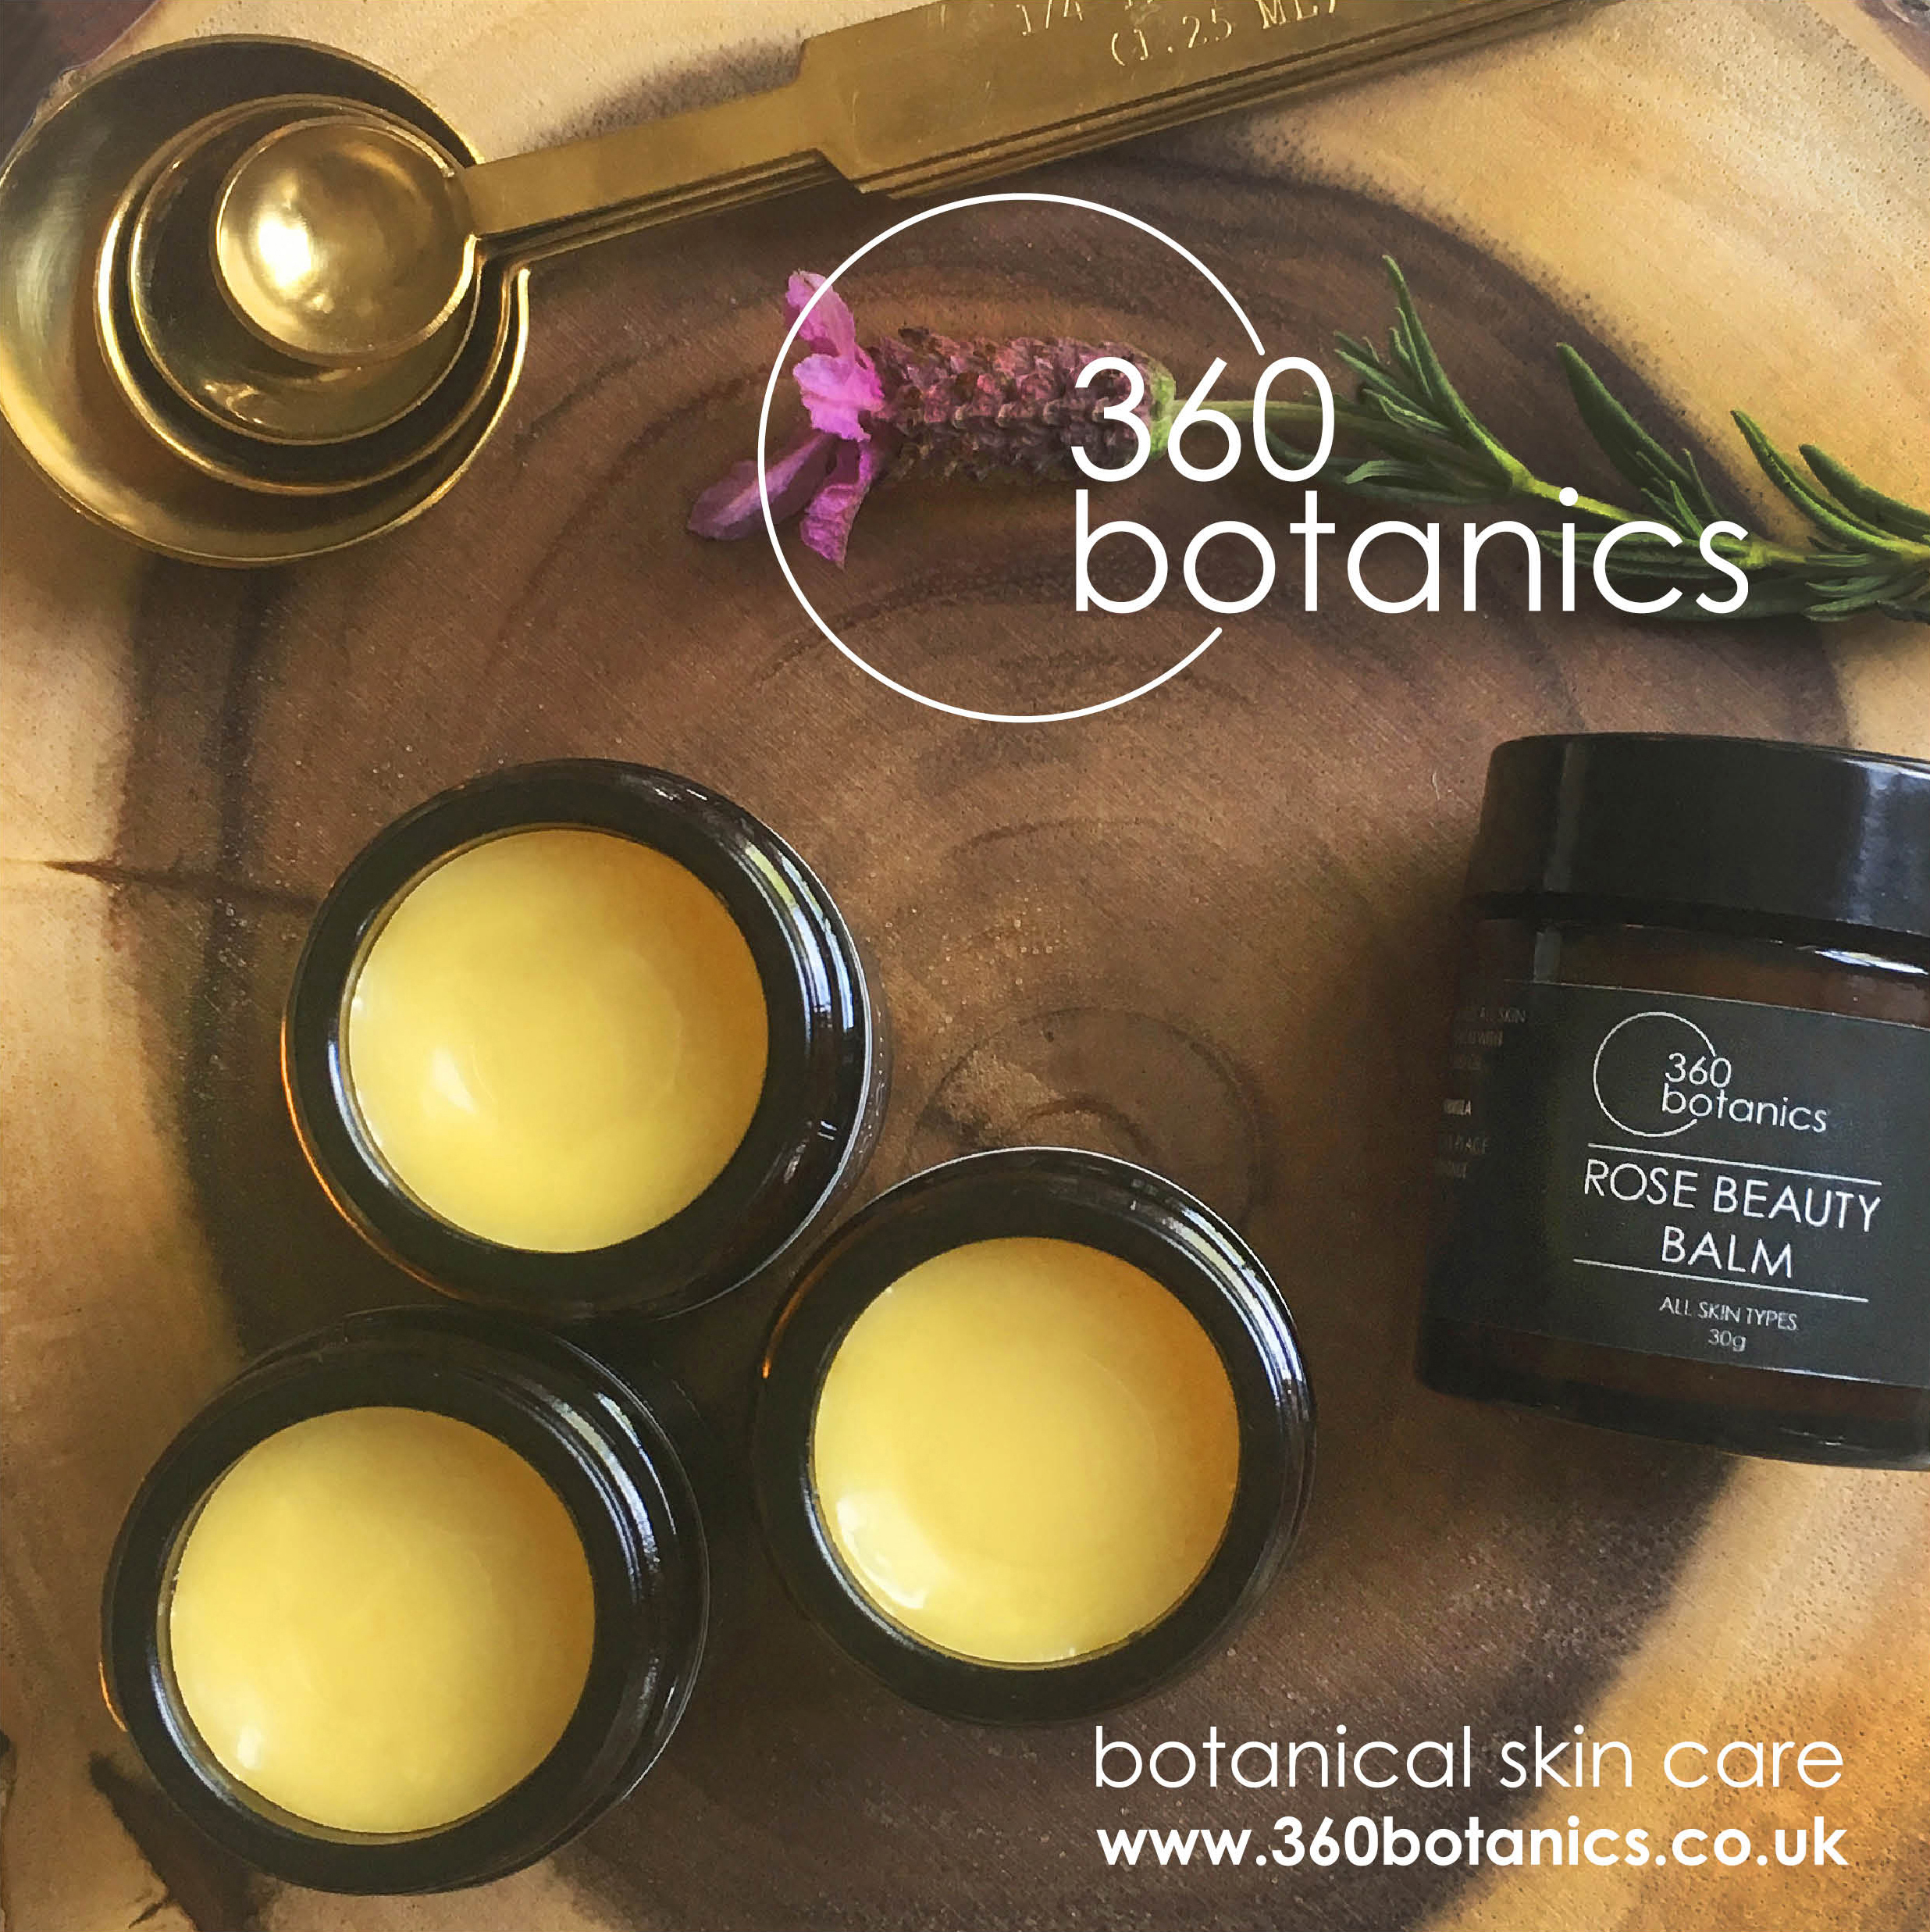 Product photography for 360-Botanics, Vegan Natural Skincare & Wellness Company